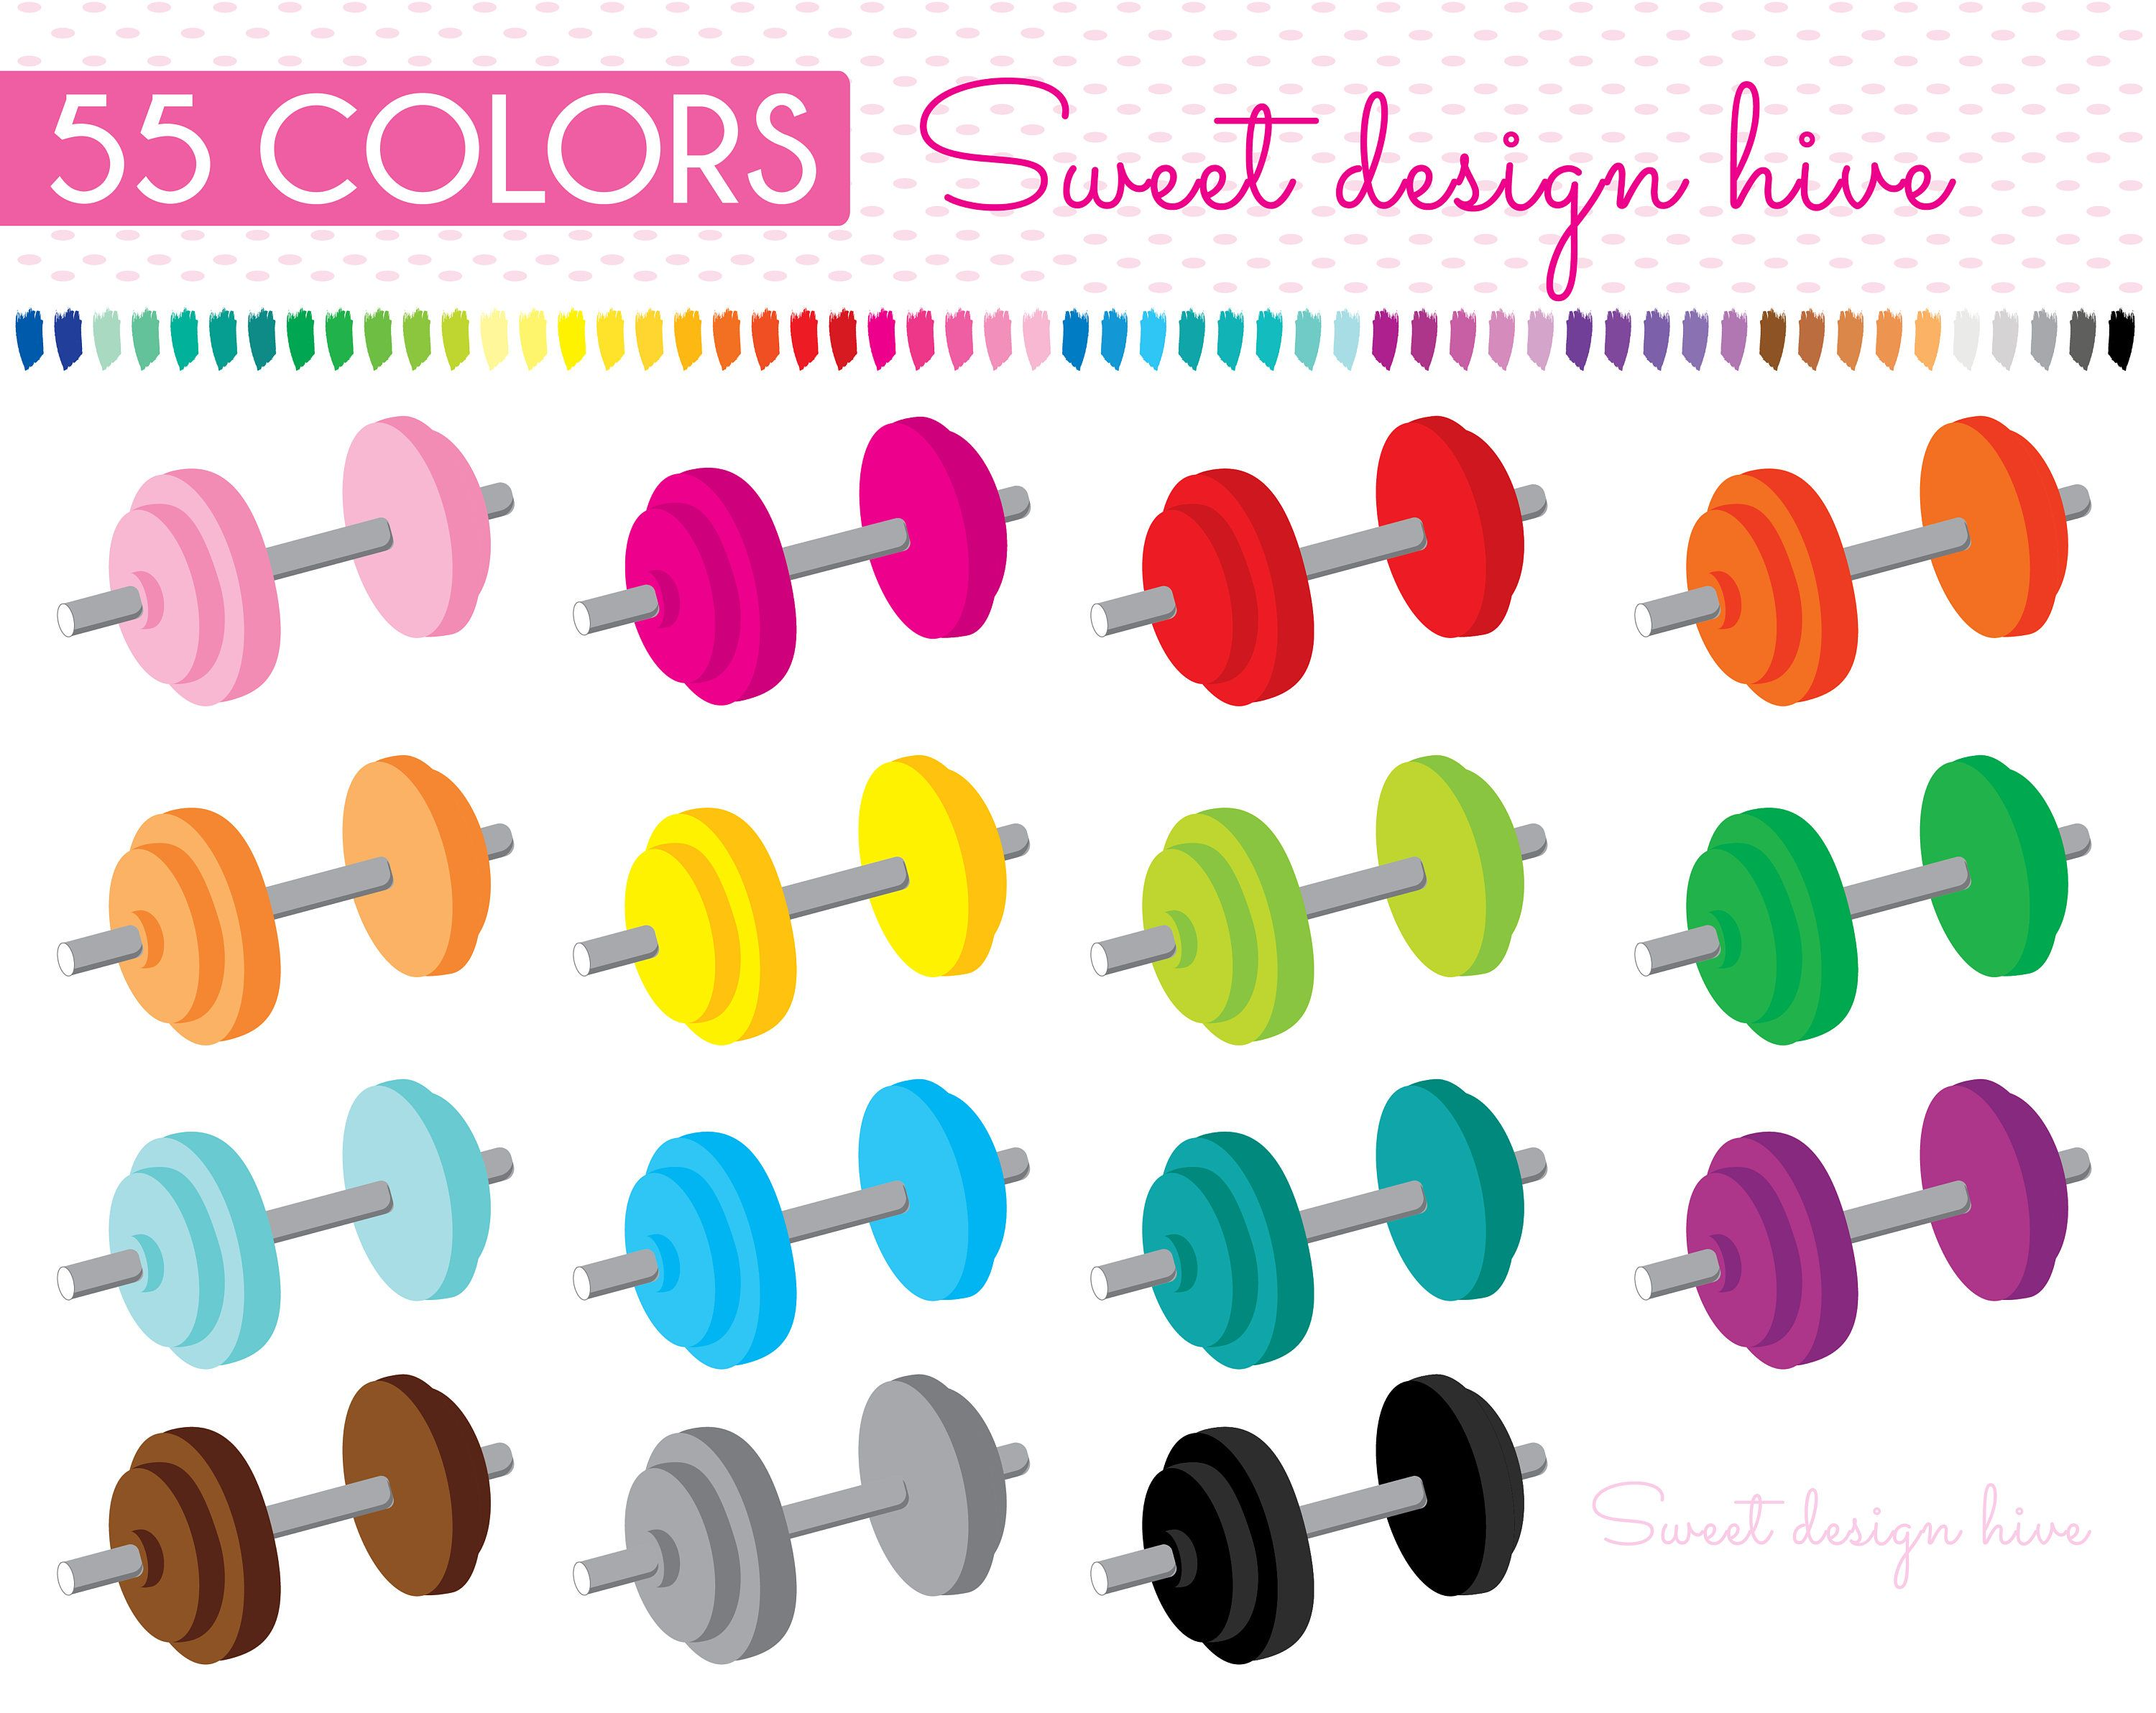 dumbbell clipart weights fitness clipart gym clipart sports clipart workout clipart gym equipment fitness planner stickers pl0088 by sweetdesignhive  [ 3000 x 2384 Pixel ]